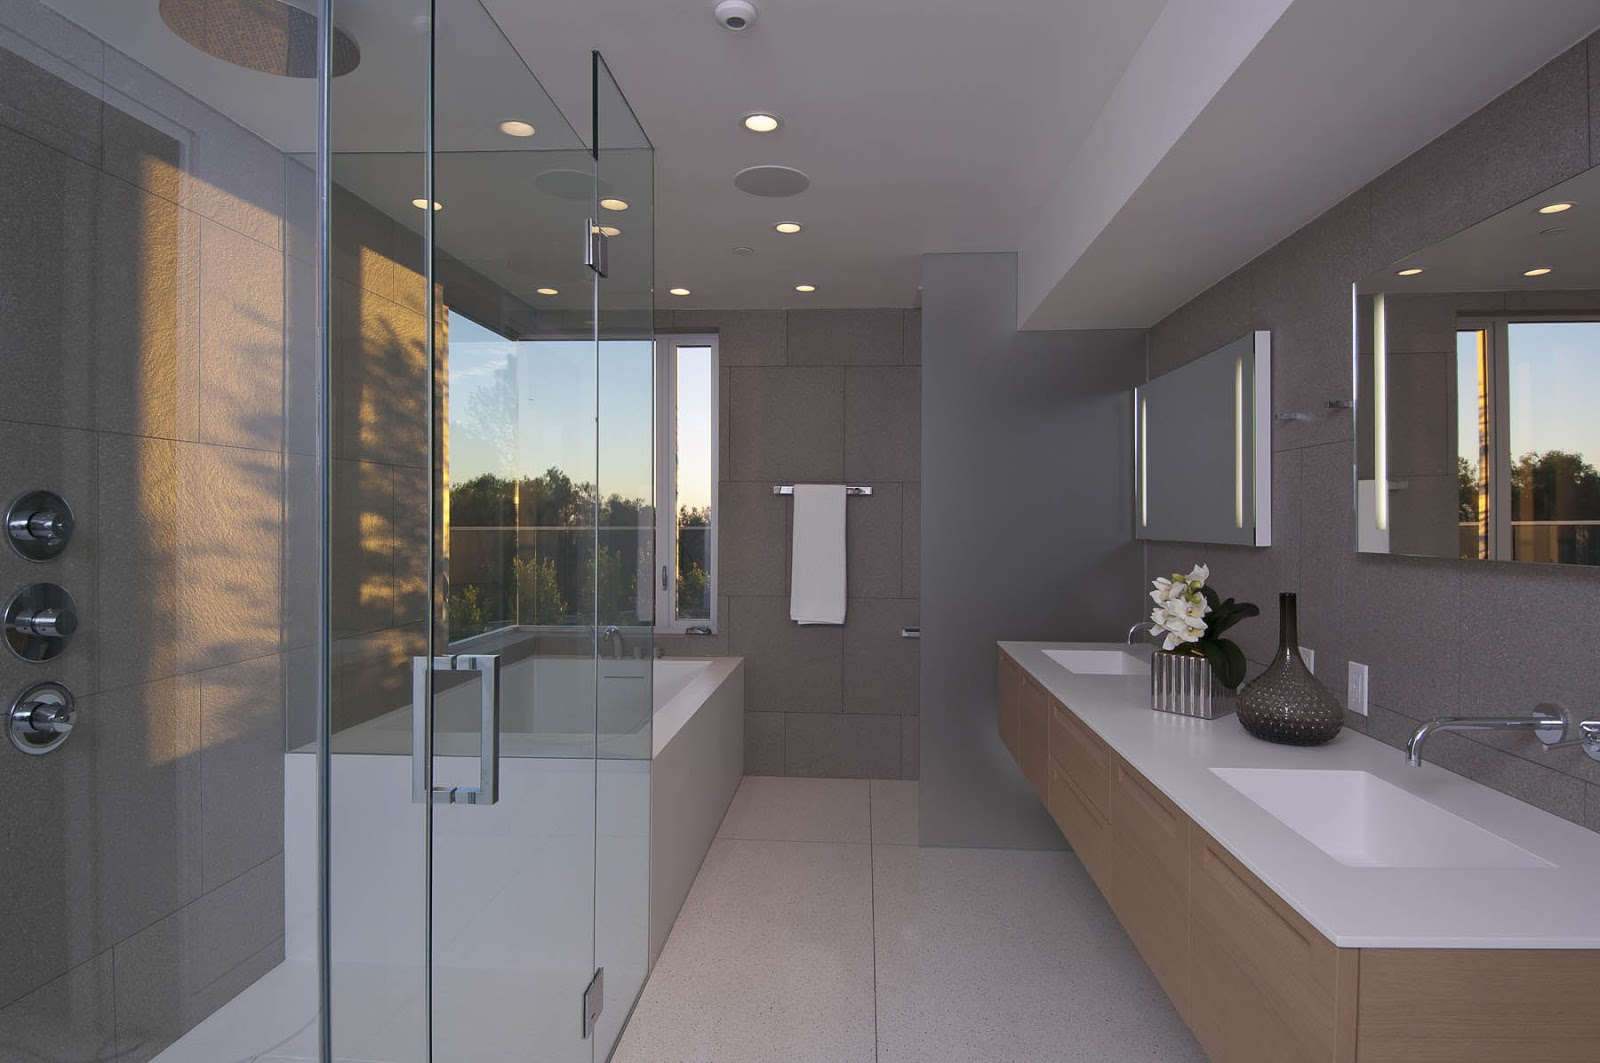 Hollywood hills master bathroom design project the design - Picture Of Modern Bathroom Modern Home Bathroom In Hollywood Hills